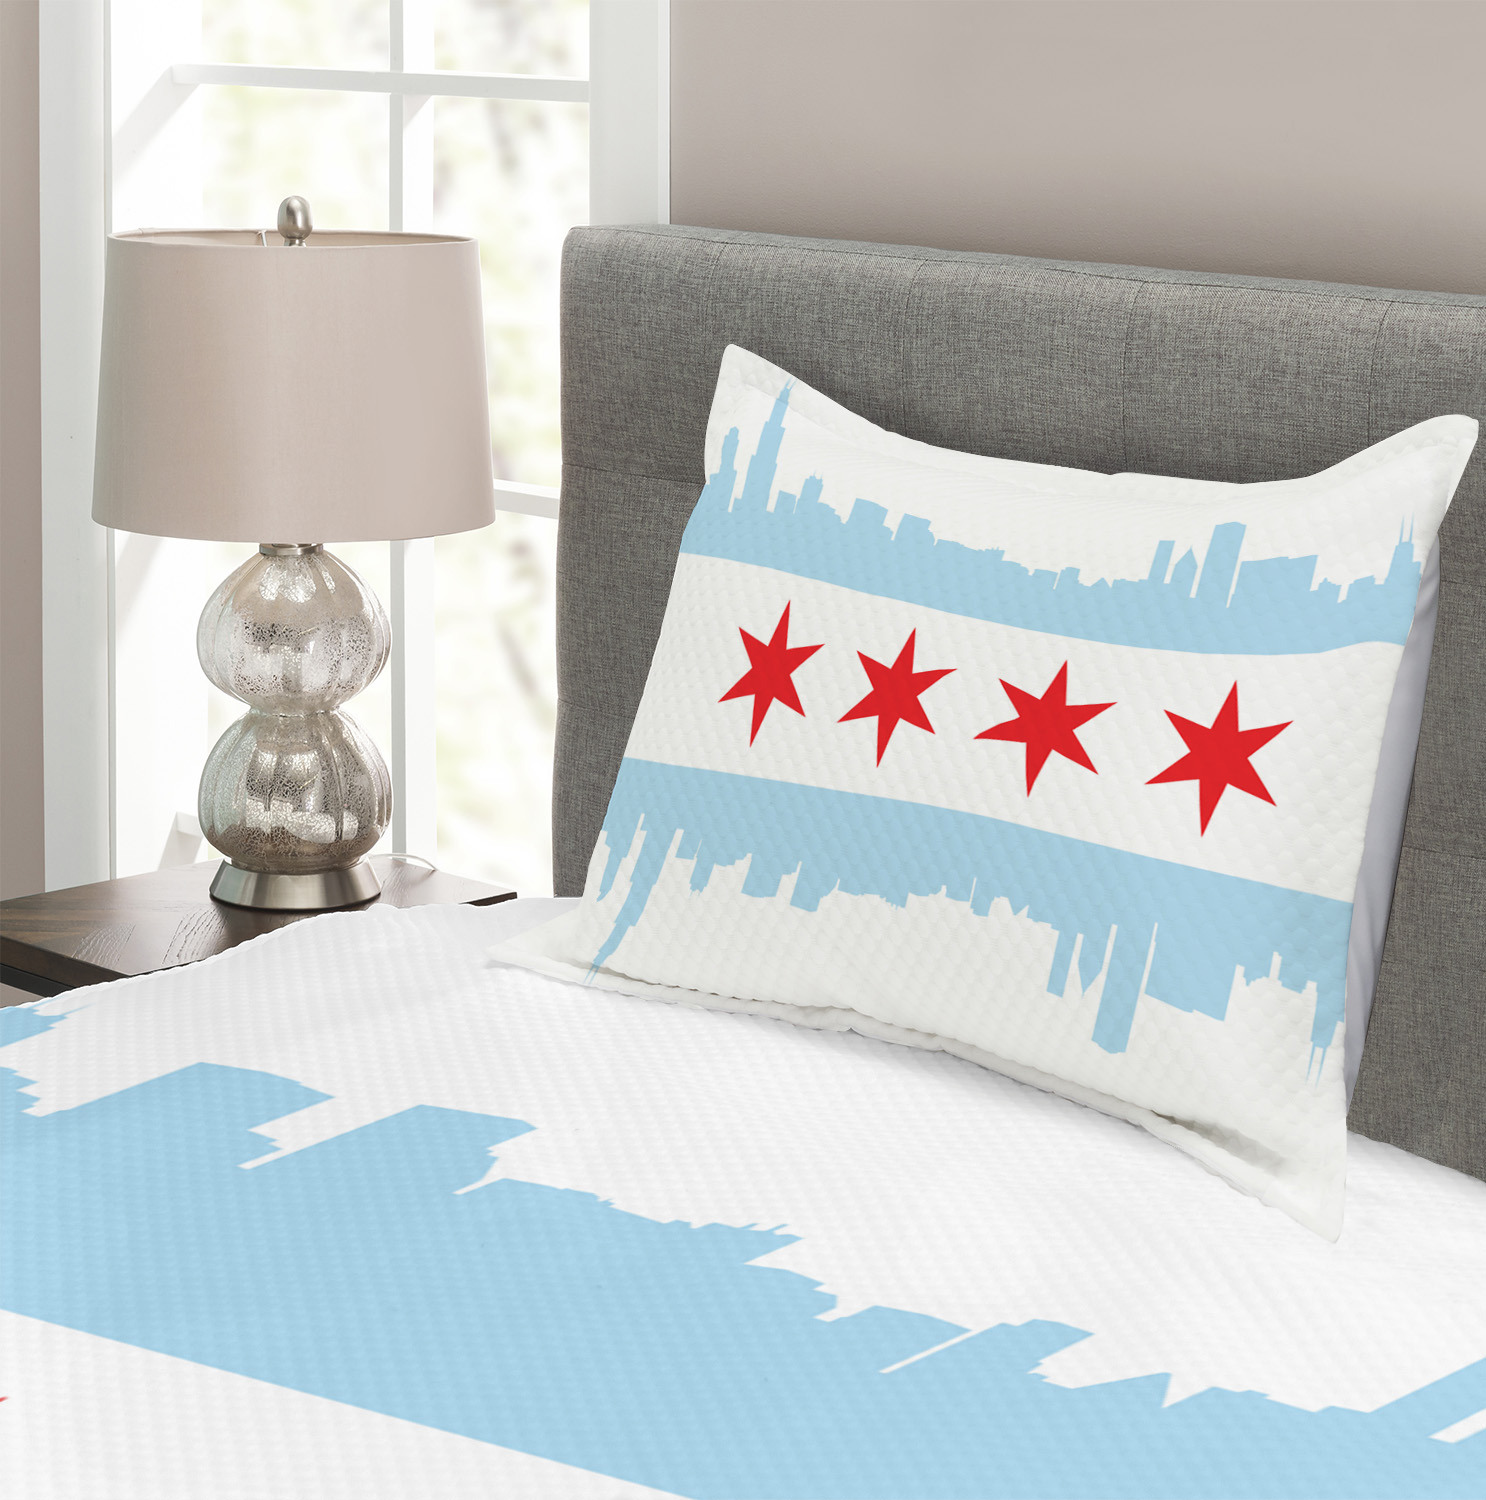 Chicago Skyline Quilted Bedspread /& Pillow Shams Set Buildings Flag Print